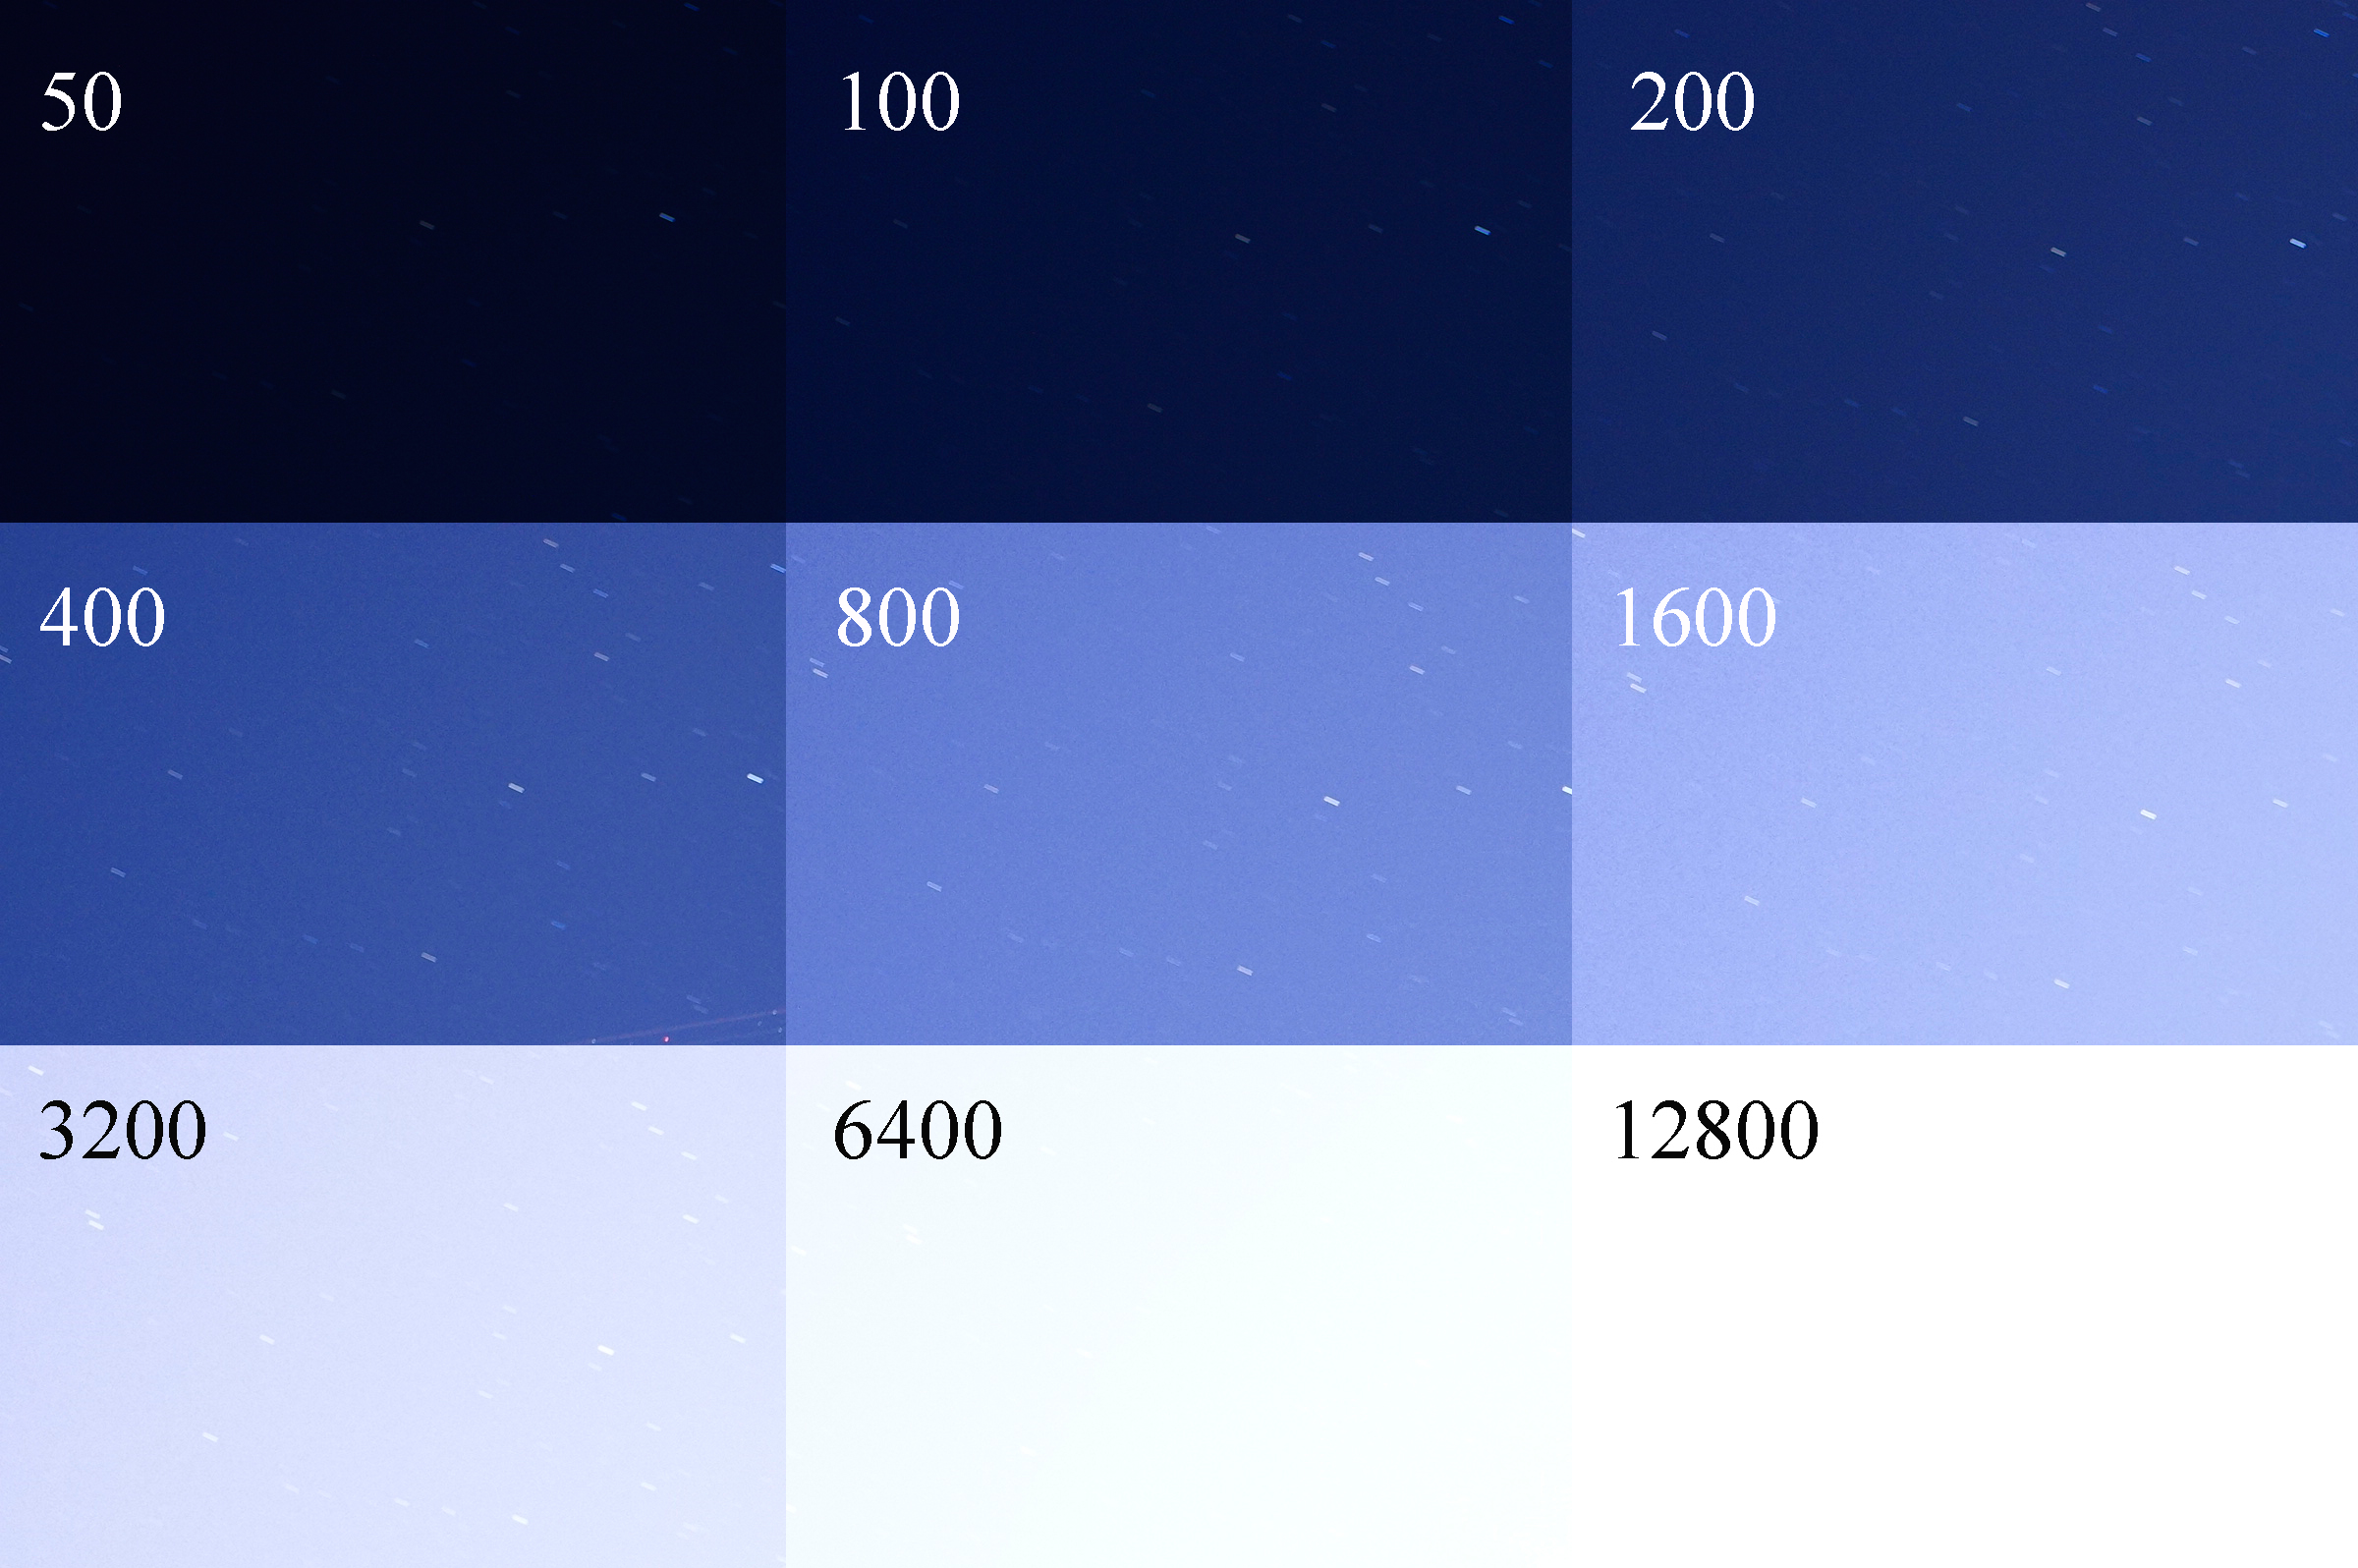 I kept the aperture at f2.8 and the shutter at 30 seconds, the ISO was changed to show the difference between the light sensitivity. More stars can be seen until it gets blocked out by ambient light. At 400 there was a plane flying through the frame.  *I changed the image to 100% crops of the upper left corner so the stars would be more visible.